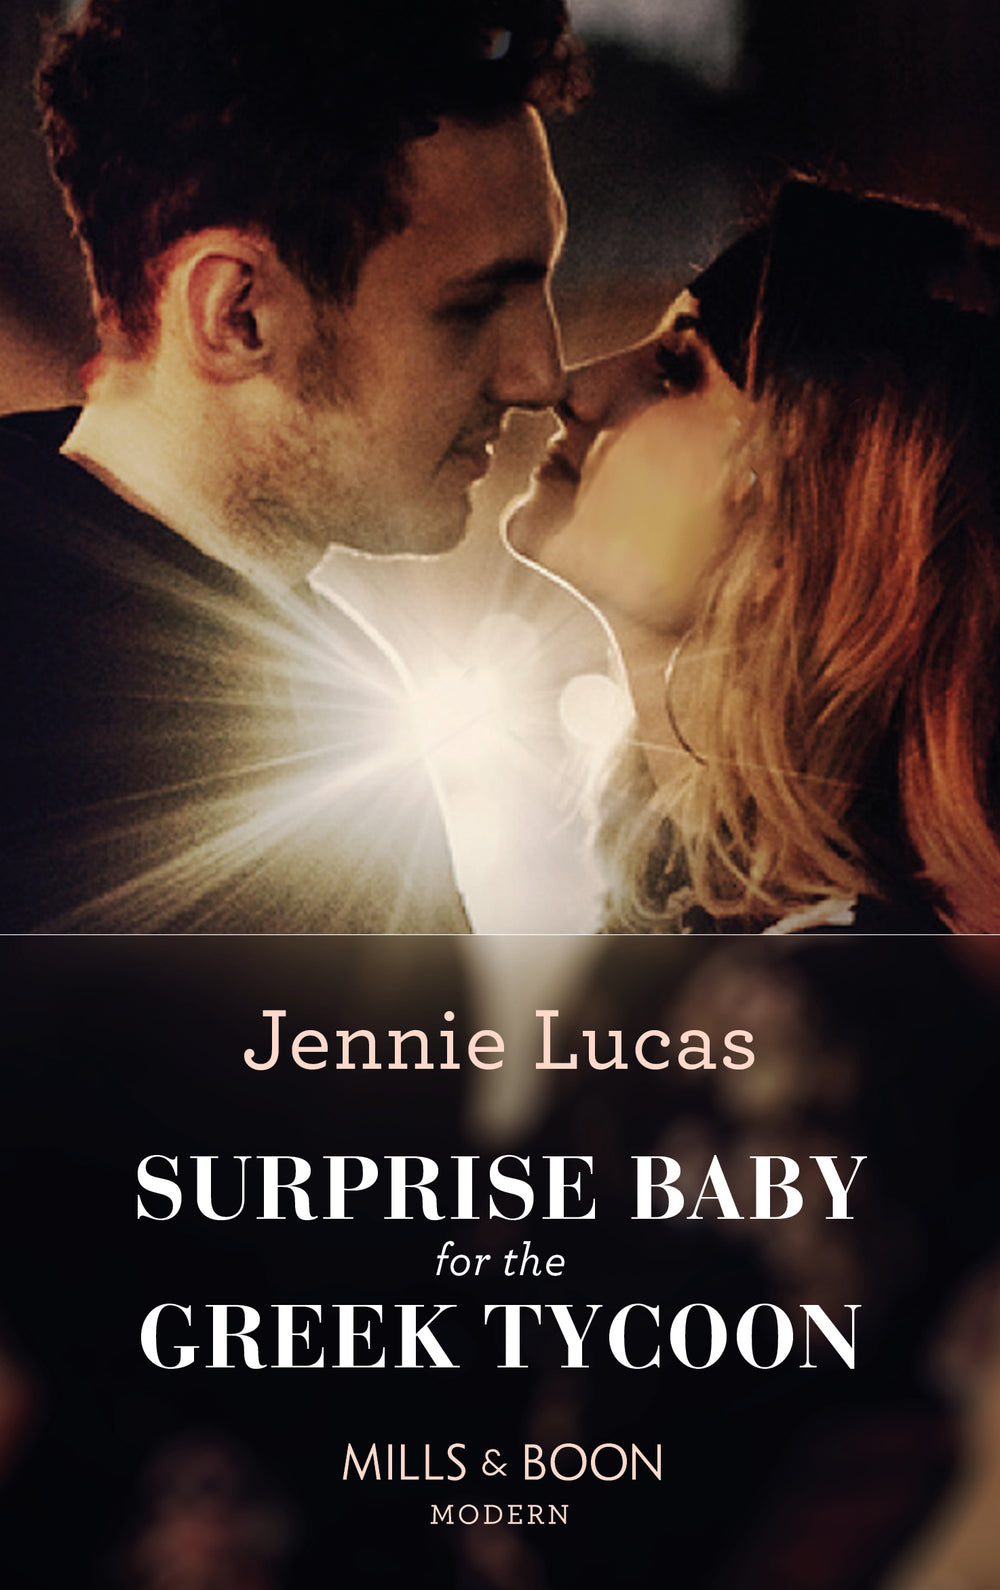 Surprise Baby for the Greek Tycoon - Chapter 2